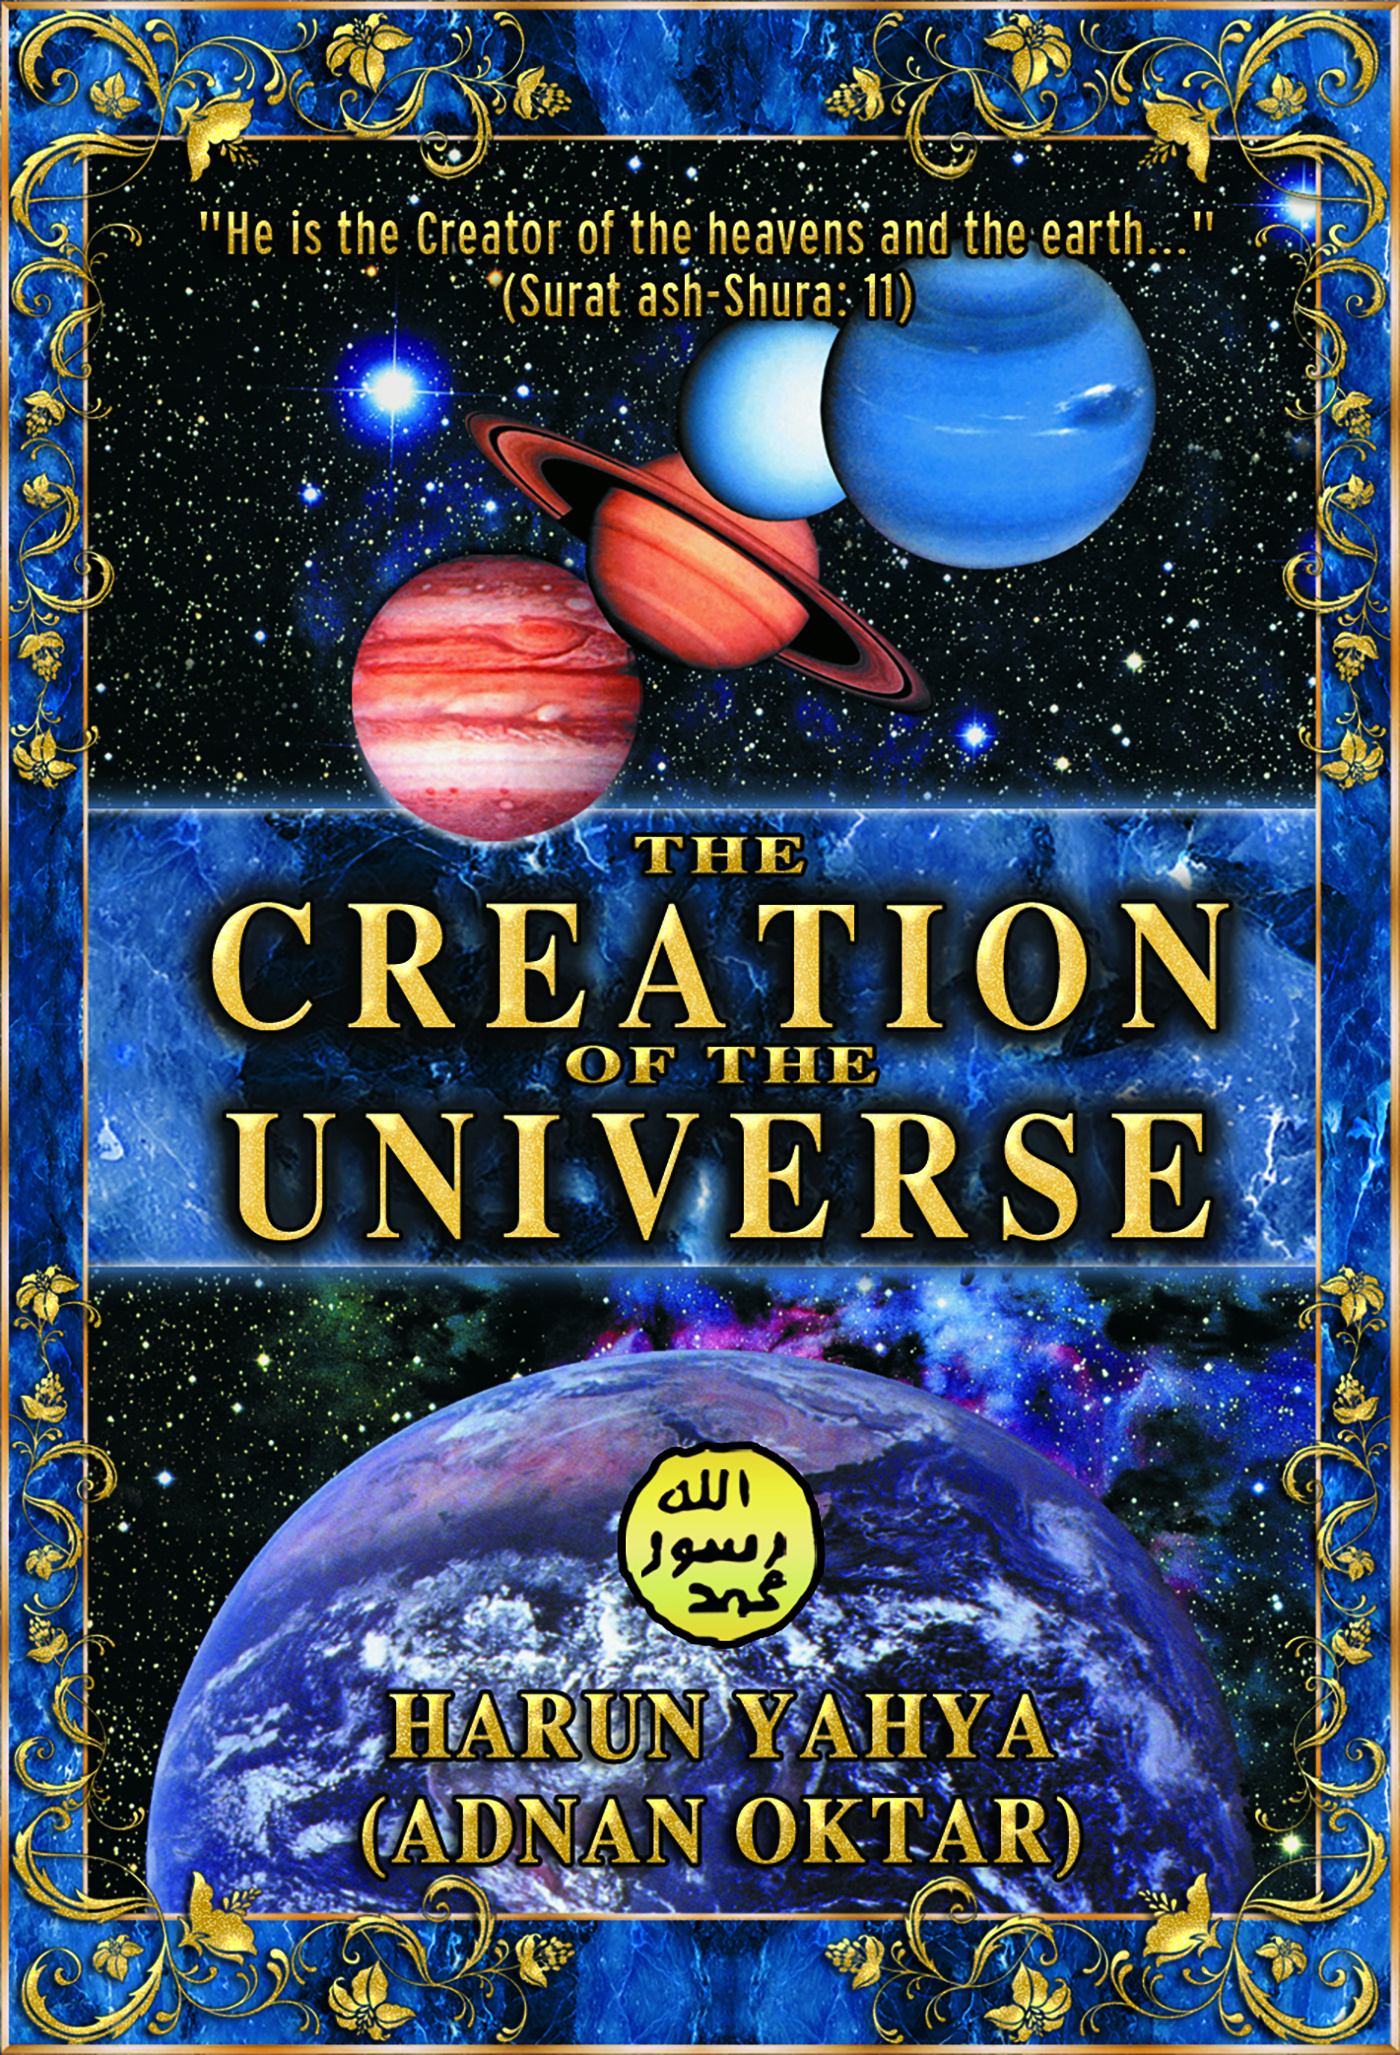 Smashwords - The Creation of the Universe - a book by ...